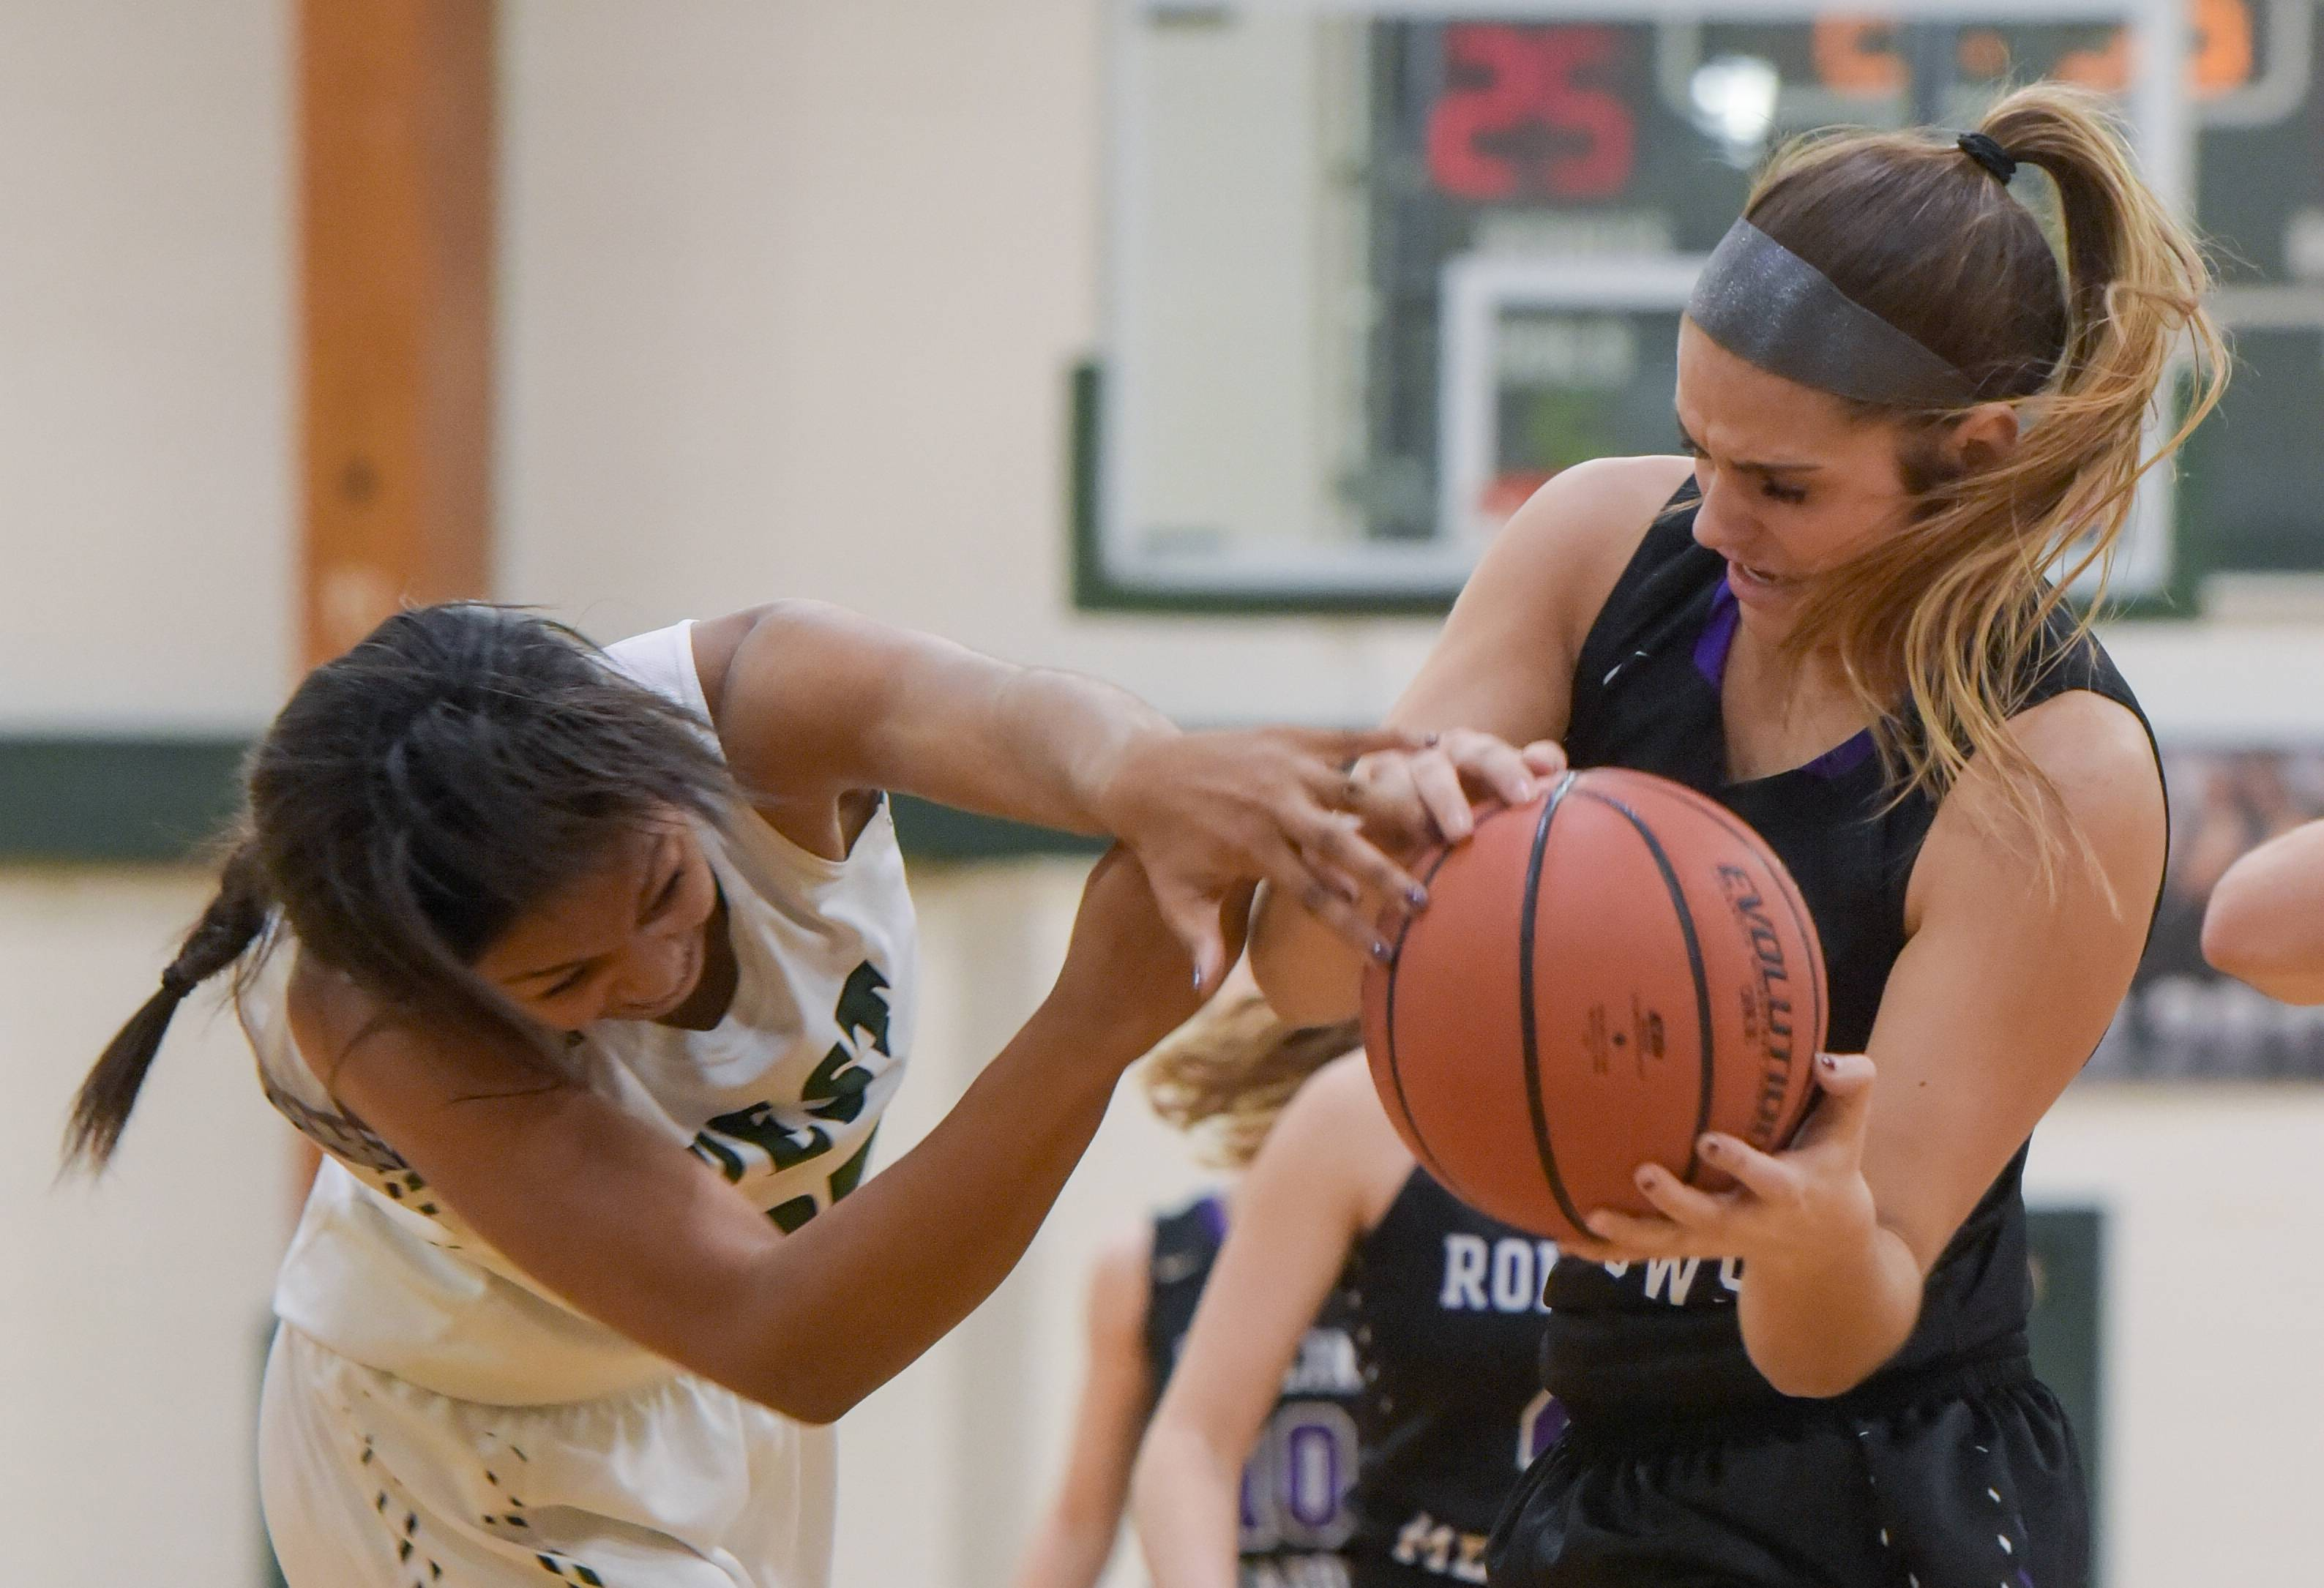 Glenbard West's Jamiyah Thomas (25) and Rolling Meadows' Elise Kowalski (23) struggle for control of the ball.